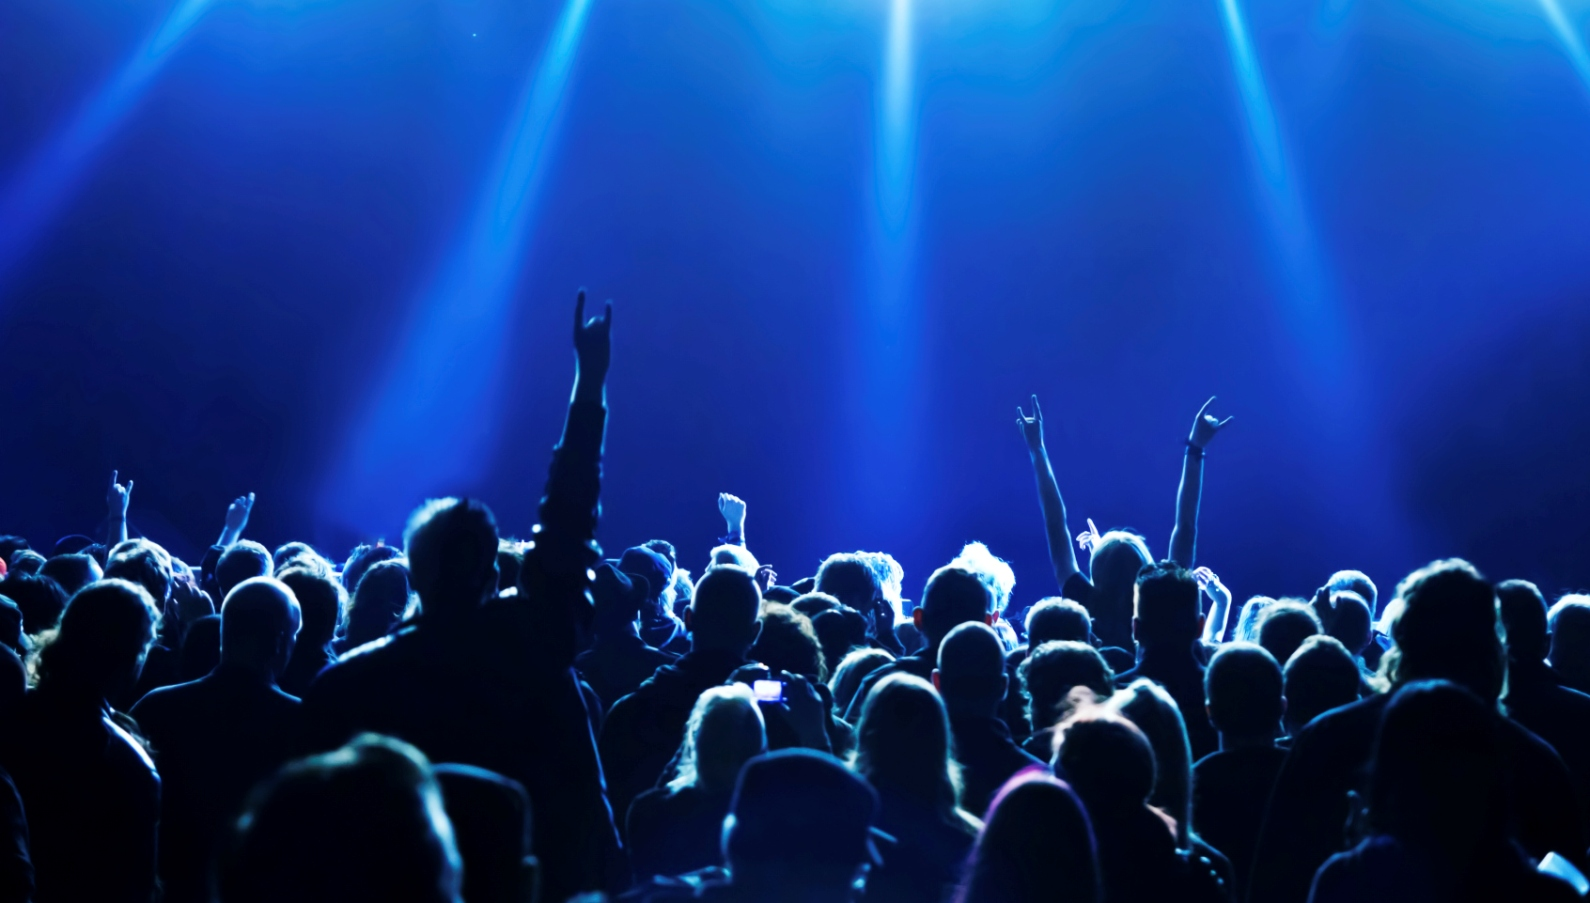 imaginative experience in a music concert essay